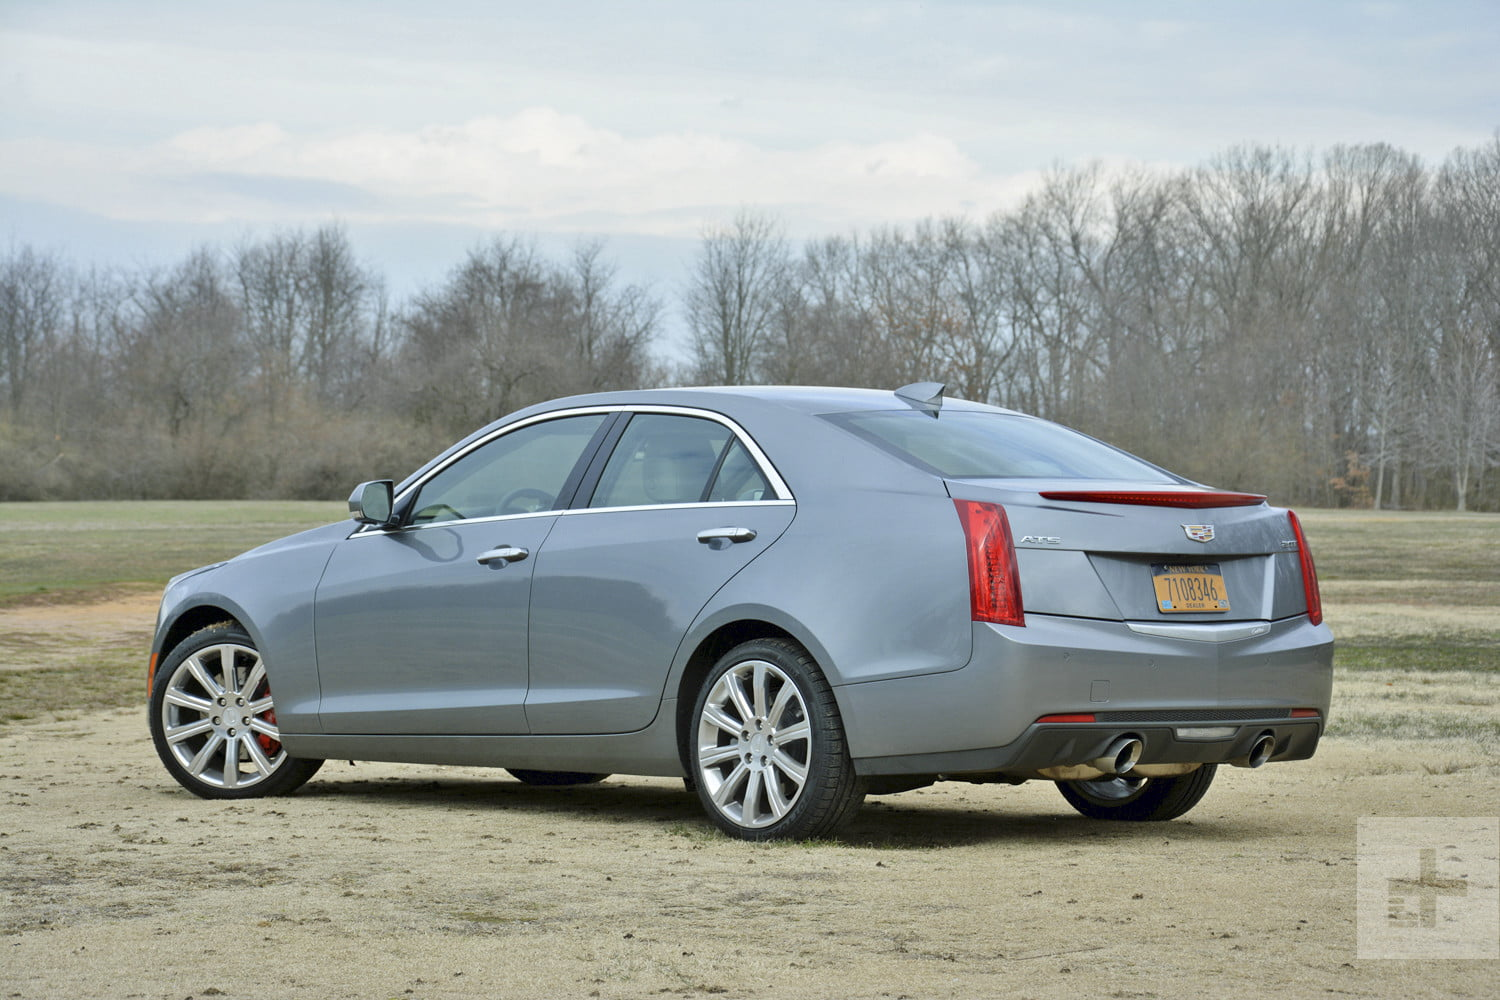 2018 cadillac ats sedan review driving impressions specs and more digital trends. Black Bedroom Furniture Sets. Home Design Ideas